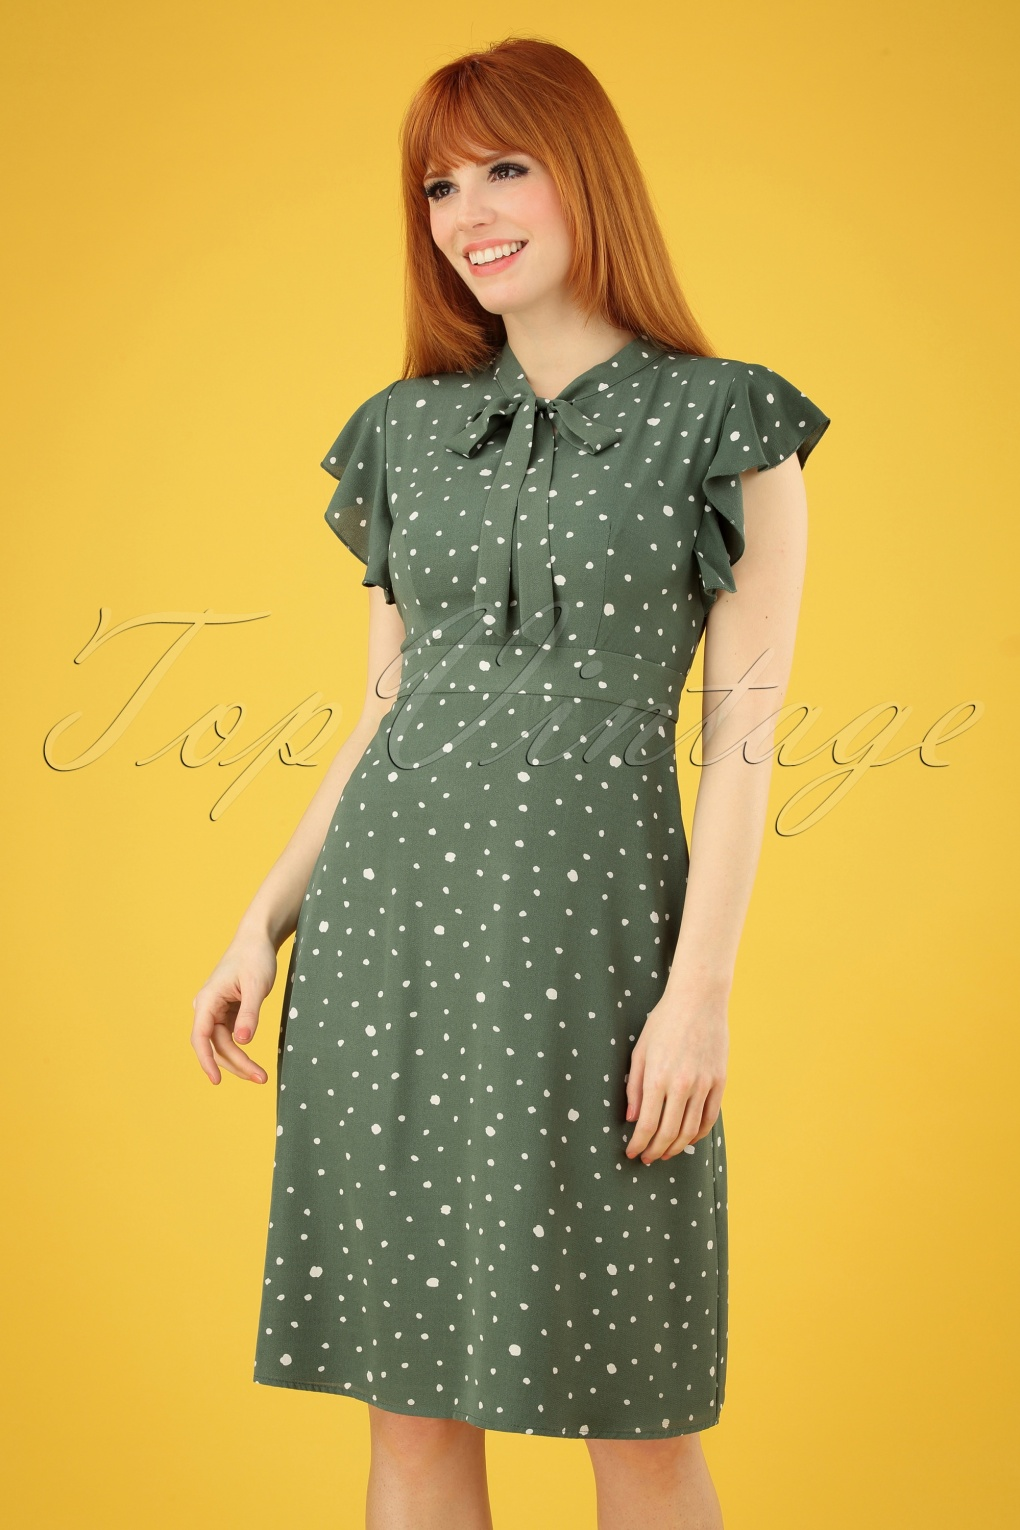 Vintage Tea Dresses, Floral Tea Dresses, Tea Length Dresses 40s Florrie Polka Ruffle Dress in Vintage Green �54.43 AT vintagedancer.com